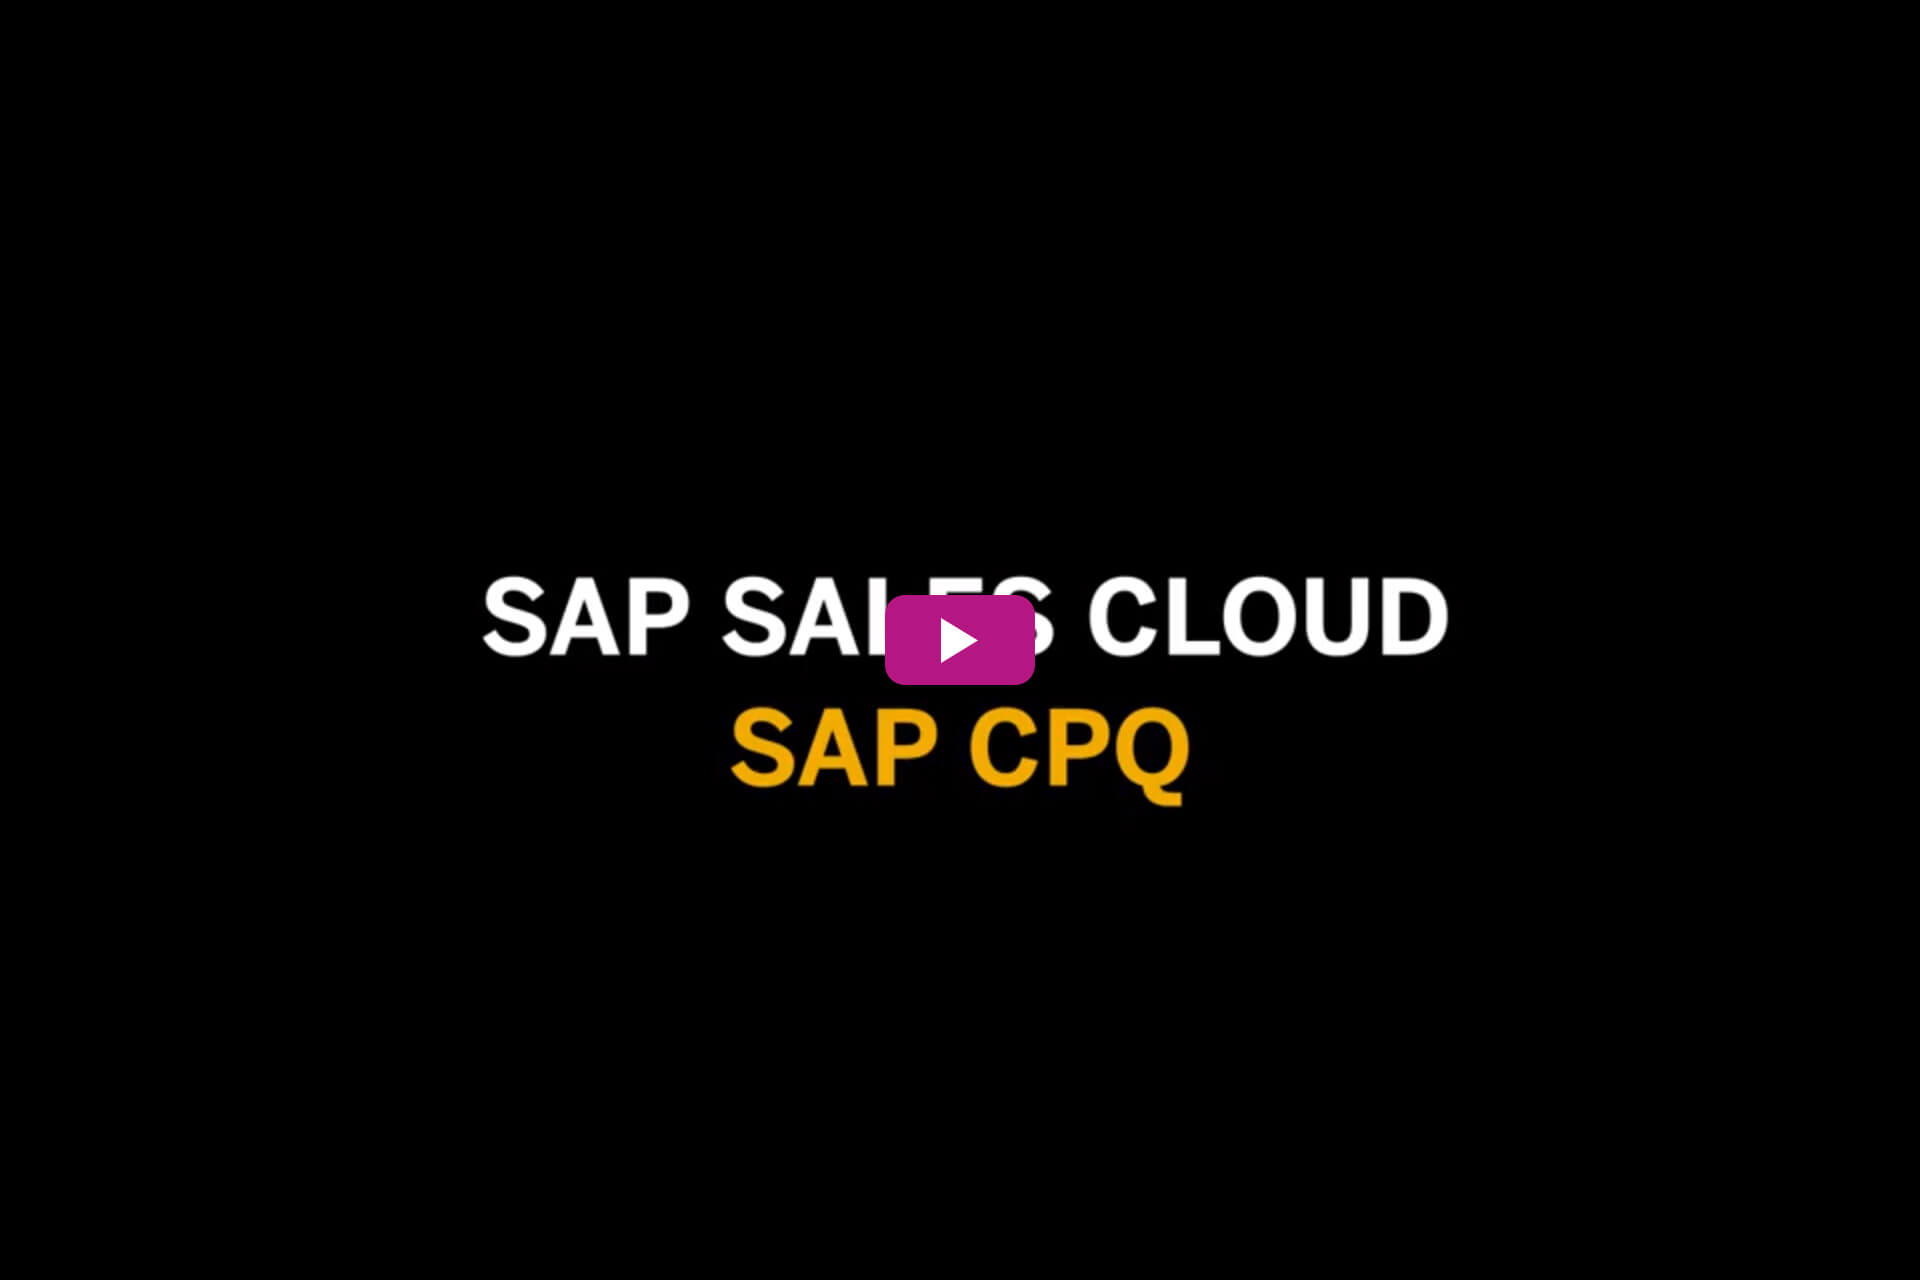 Vorschaubild zum Video SAP Sales Cloud: SAP CPQ